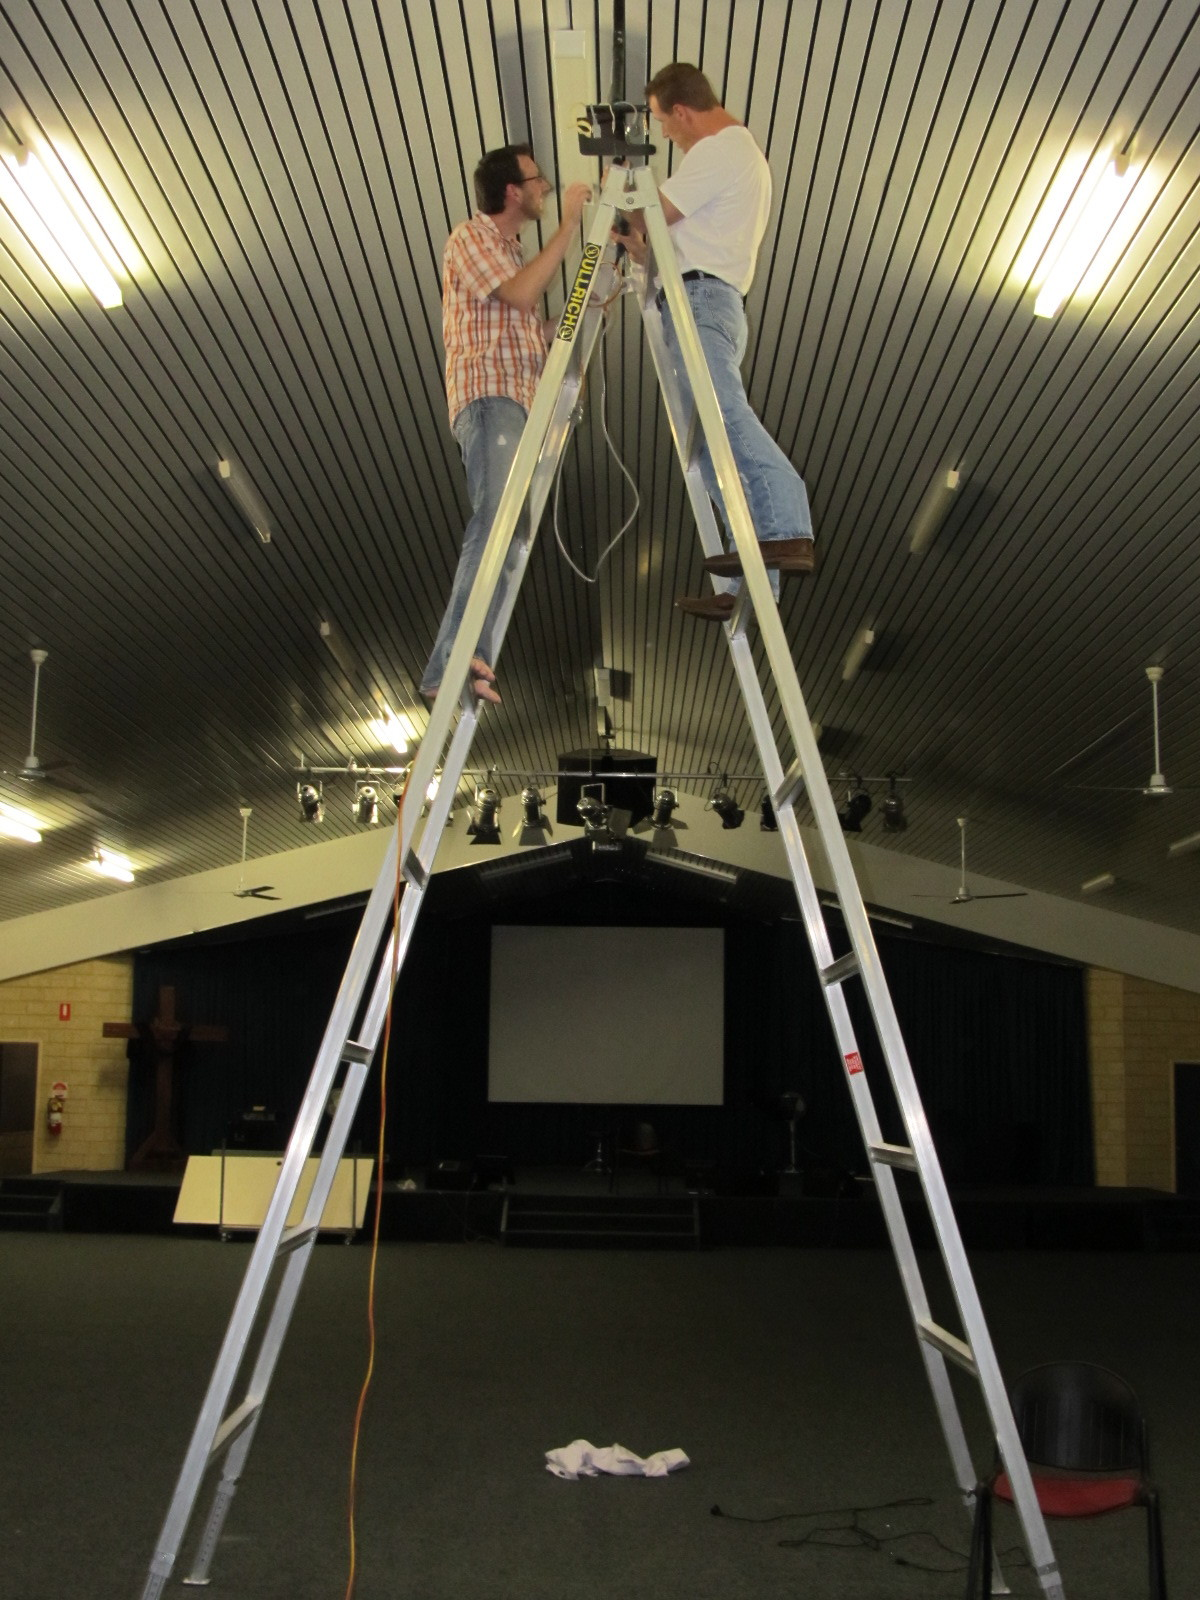 2-25-13 Hanging new projector-2.JPG